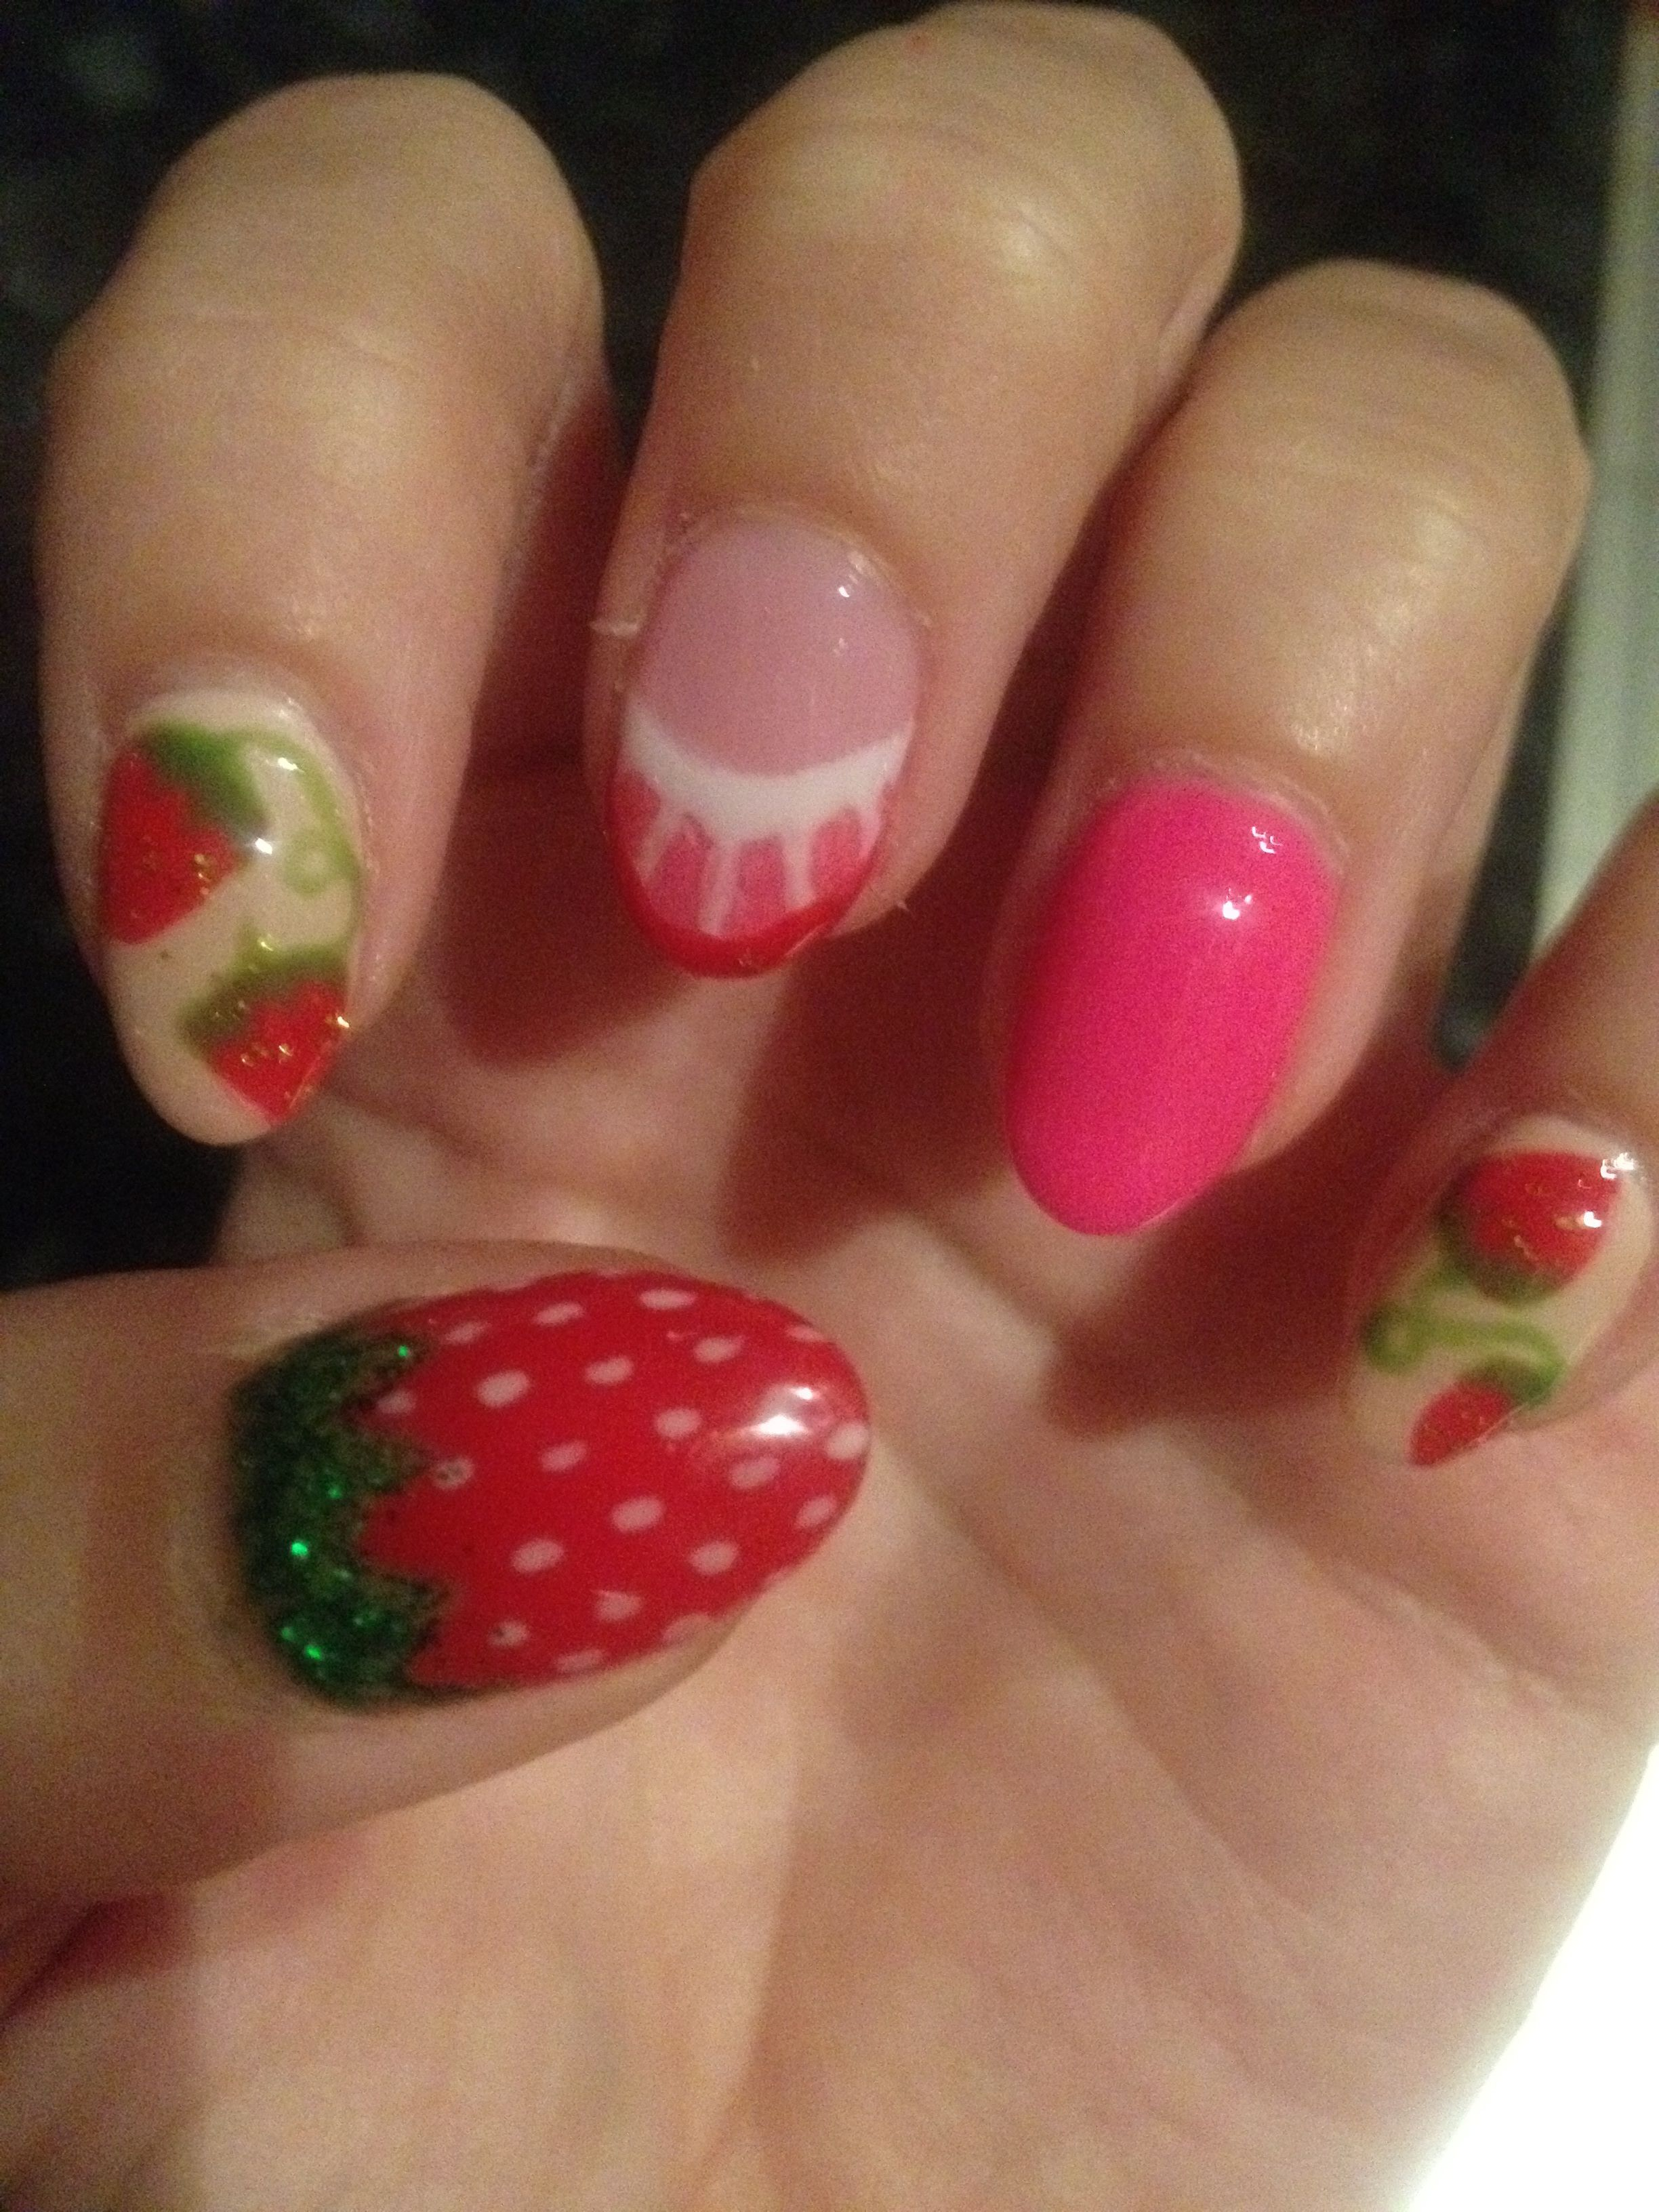 Strawberry nails by Hayley @ diamond beauty in Lincoln